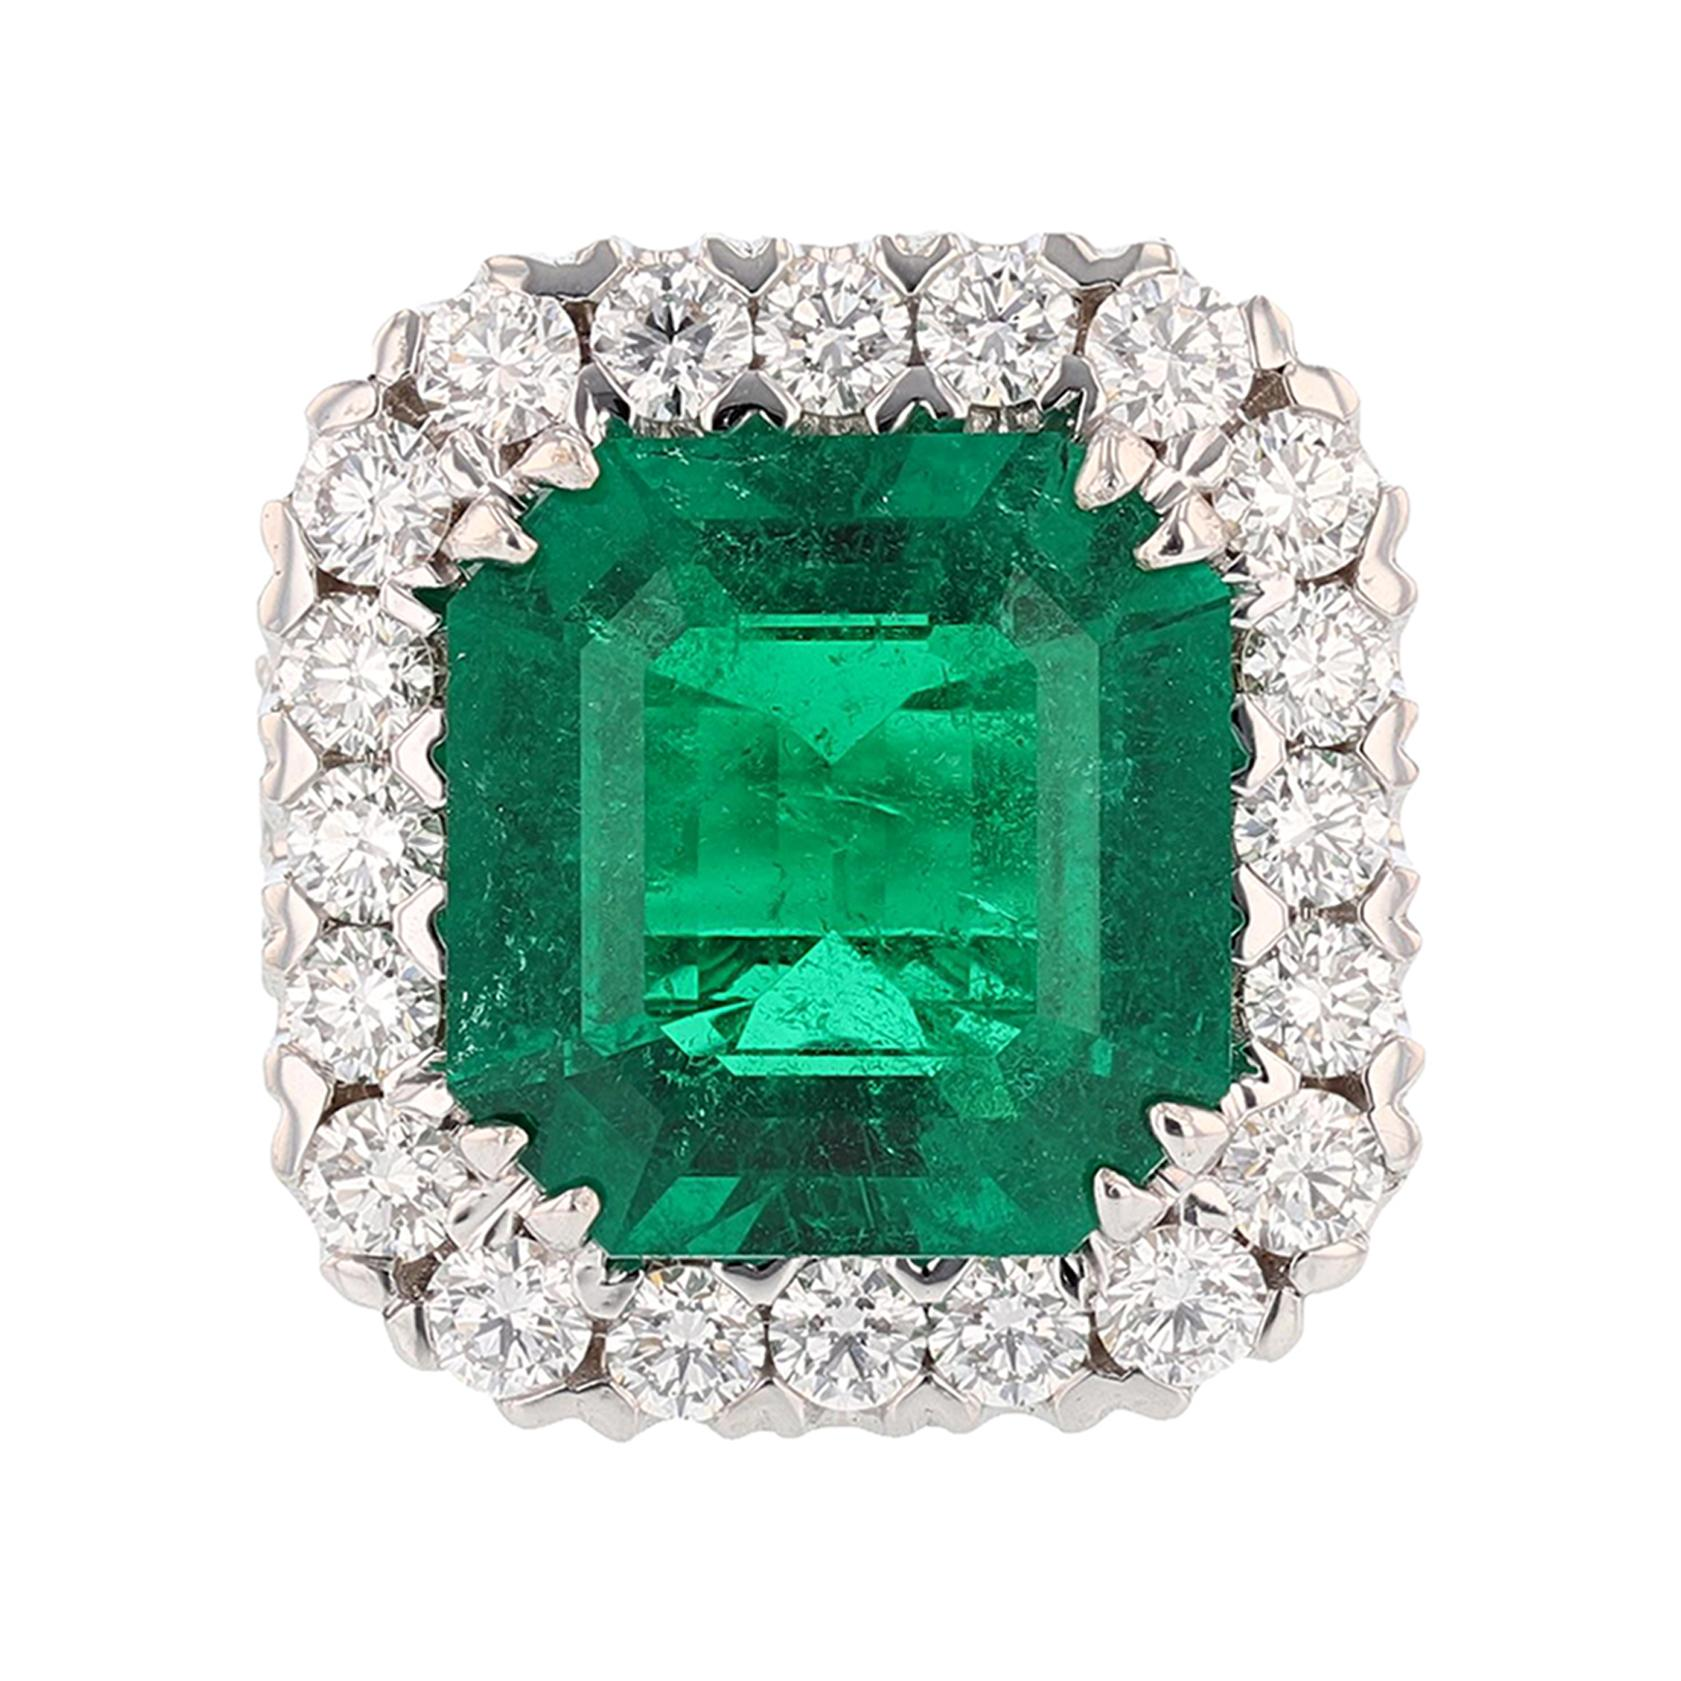 18 Karat White Gold 10.08 Carat Colombian Emerald 3.79 Carat Diamond Ring